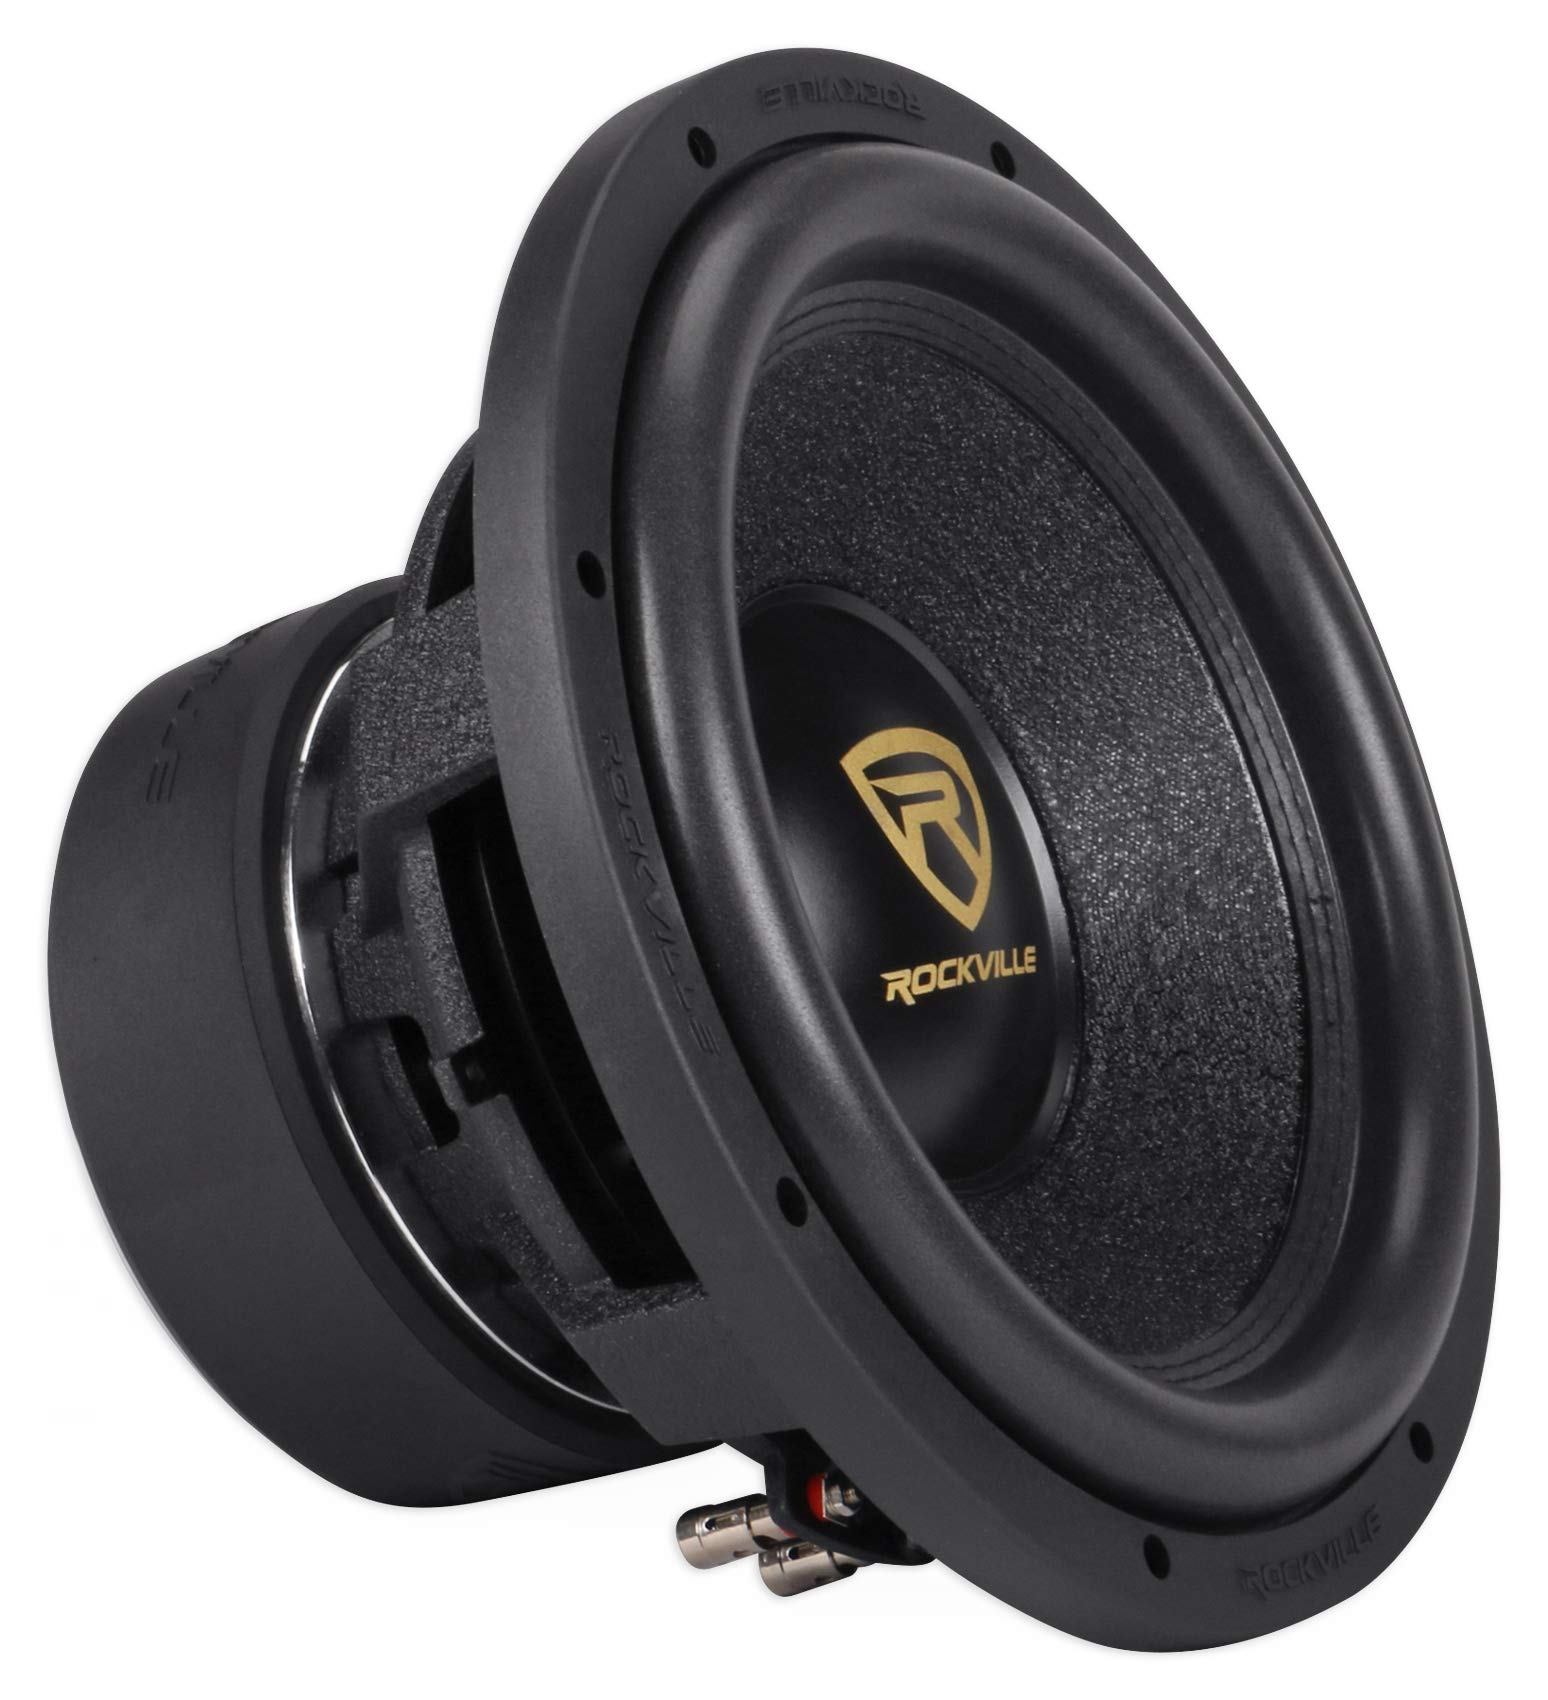 Rockville W12K9D2 12'' 4000w Car Audio Subwoofer Dual 2-Ohm Sub CEA Compliant